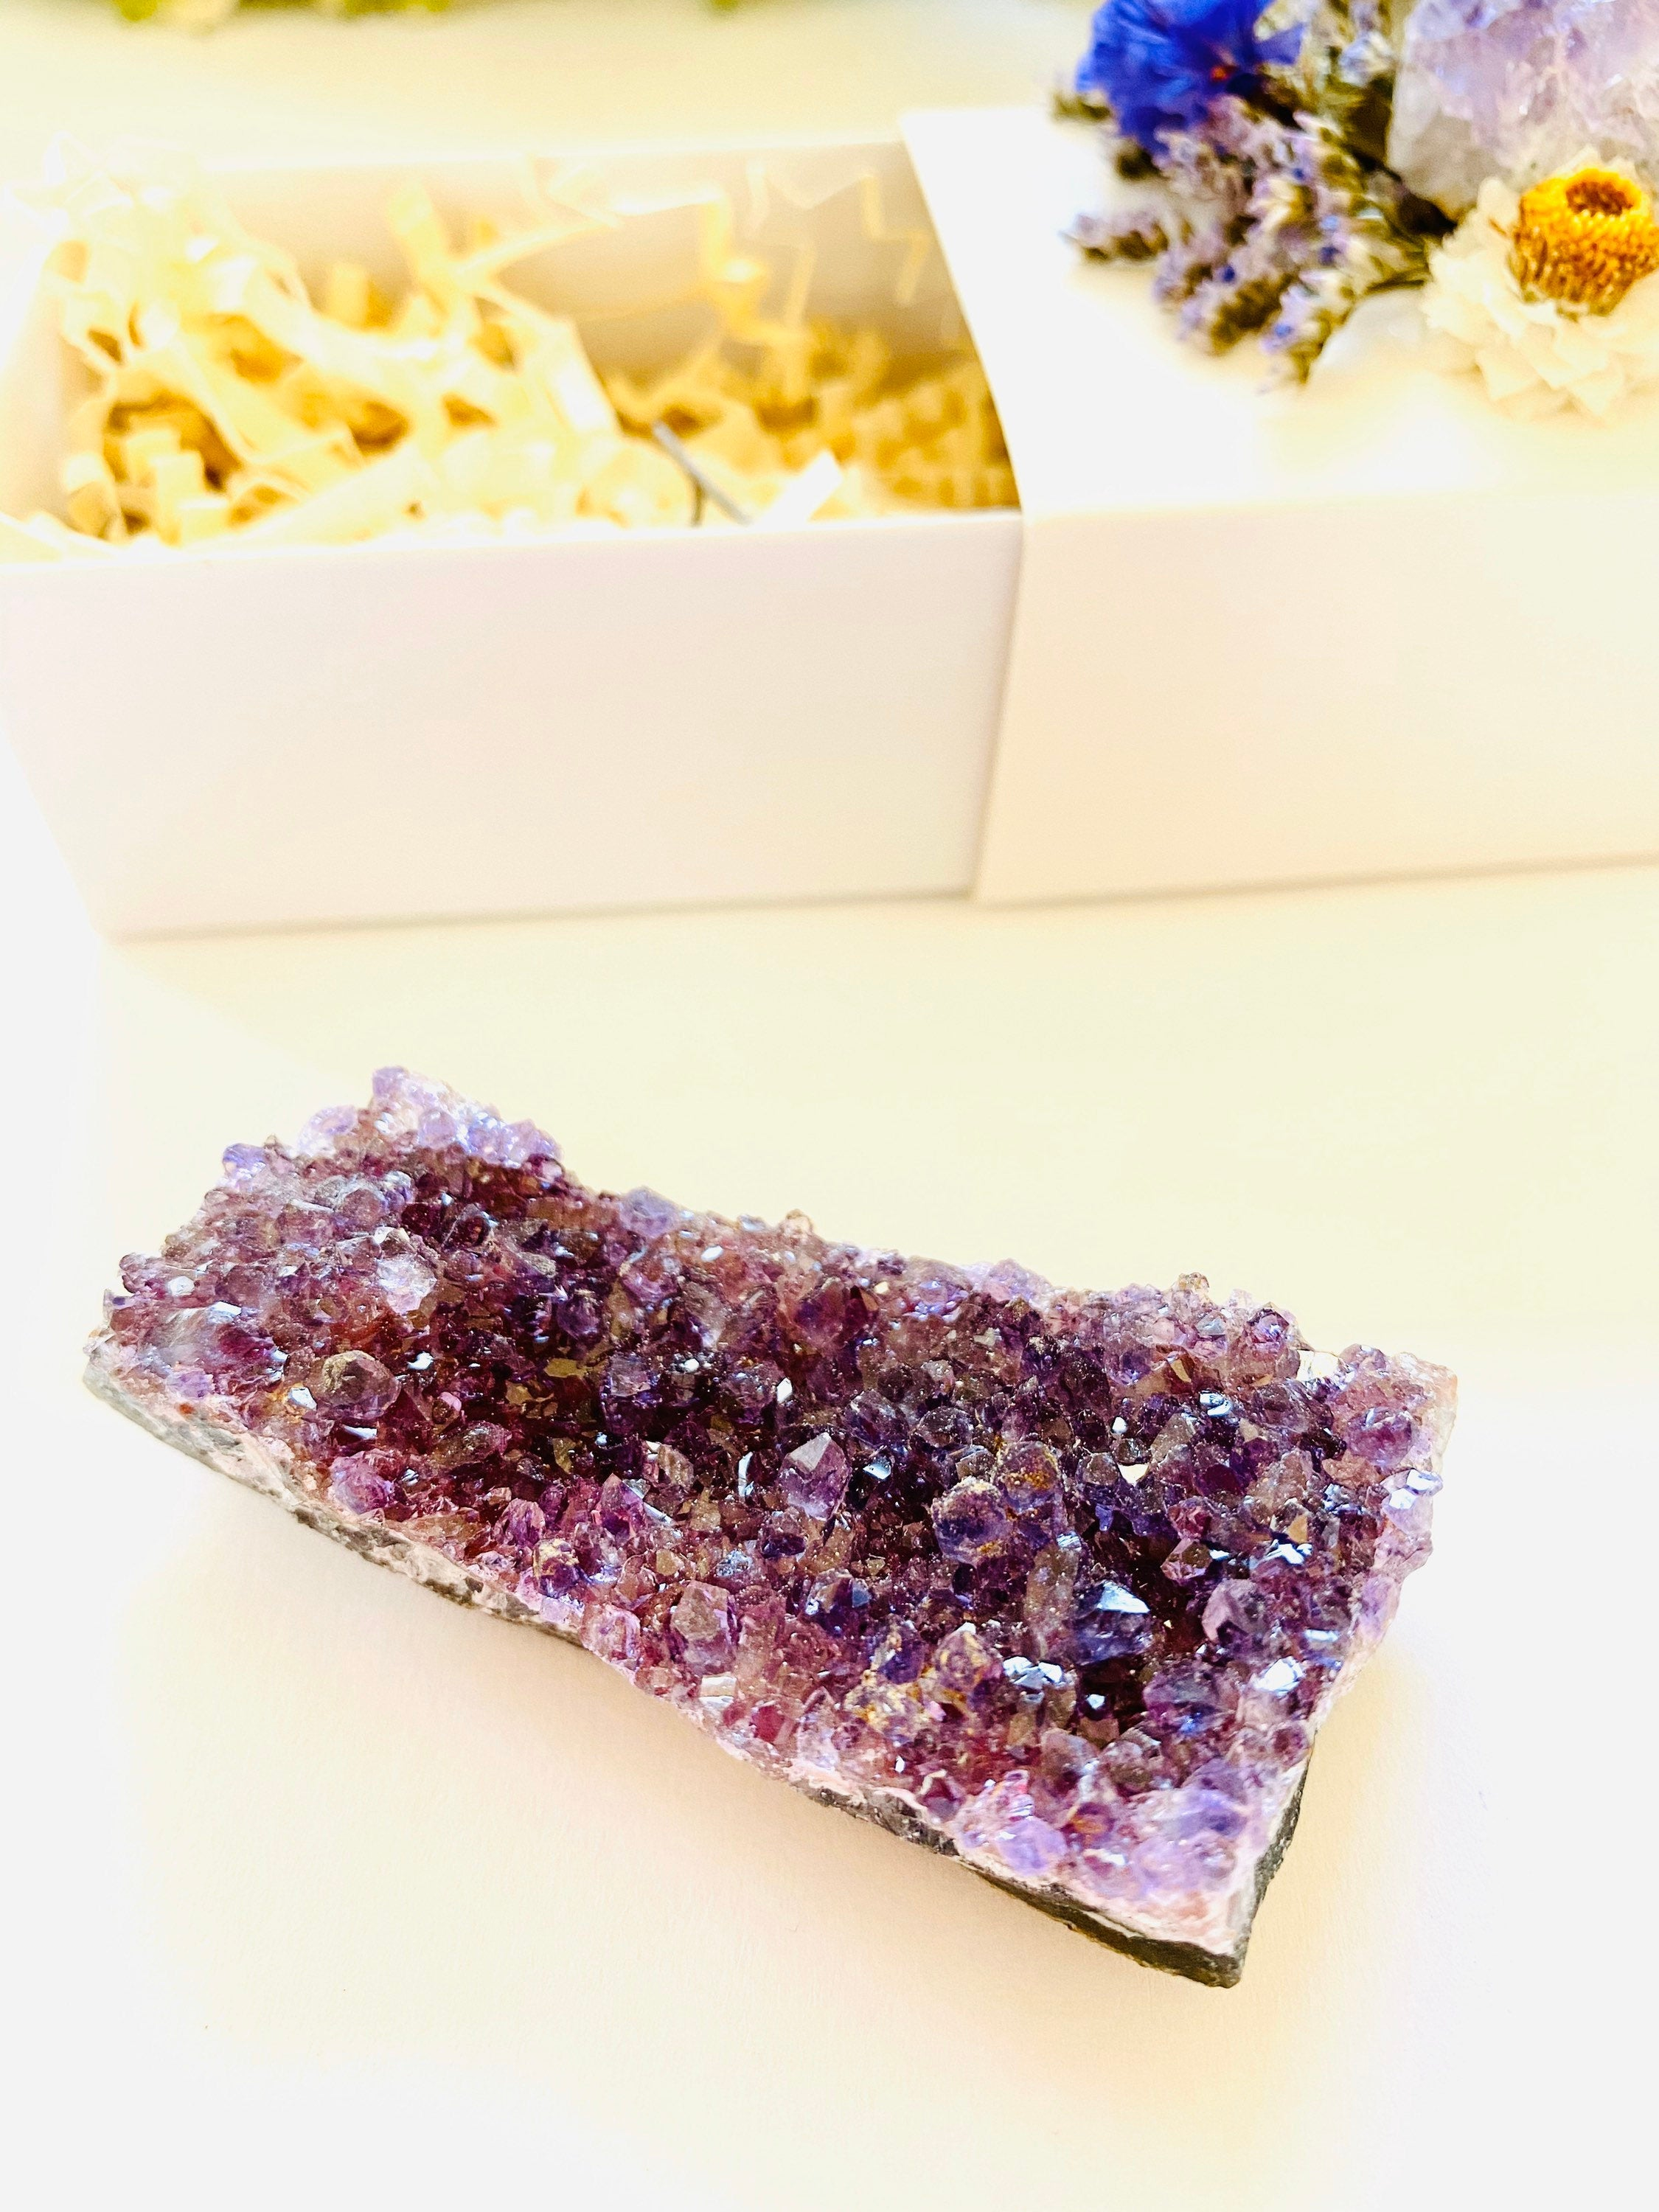 Crystal Gift Box, Geode Crystal Gift Box, Get Well Soon Crystal Gift Box, Self Care Package, Wellness Crystal Gift Box, Amethyst Crystal